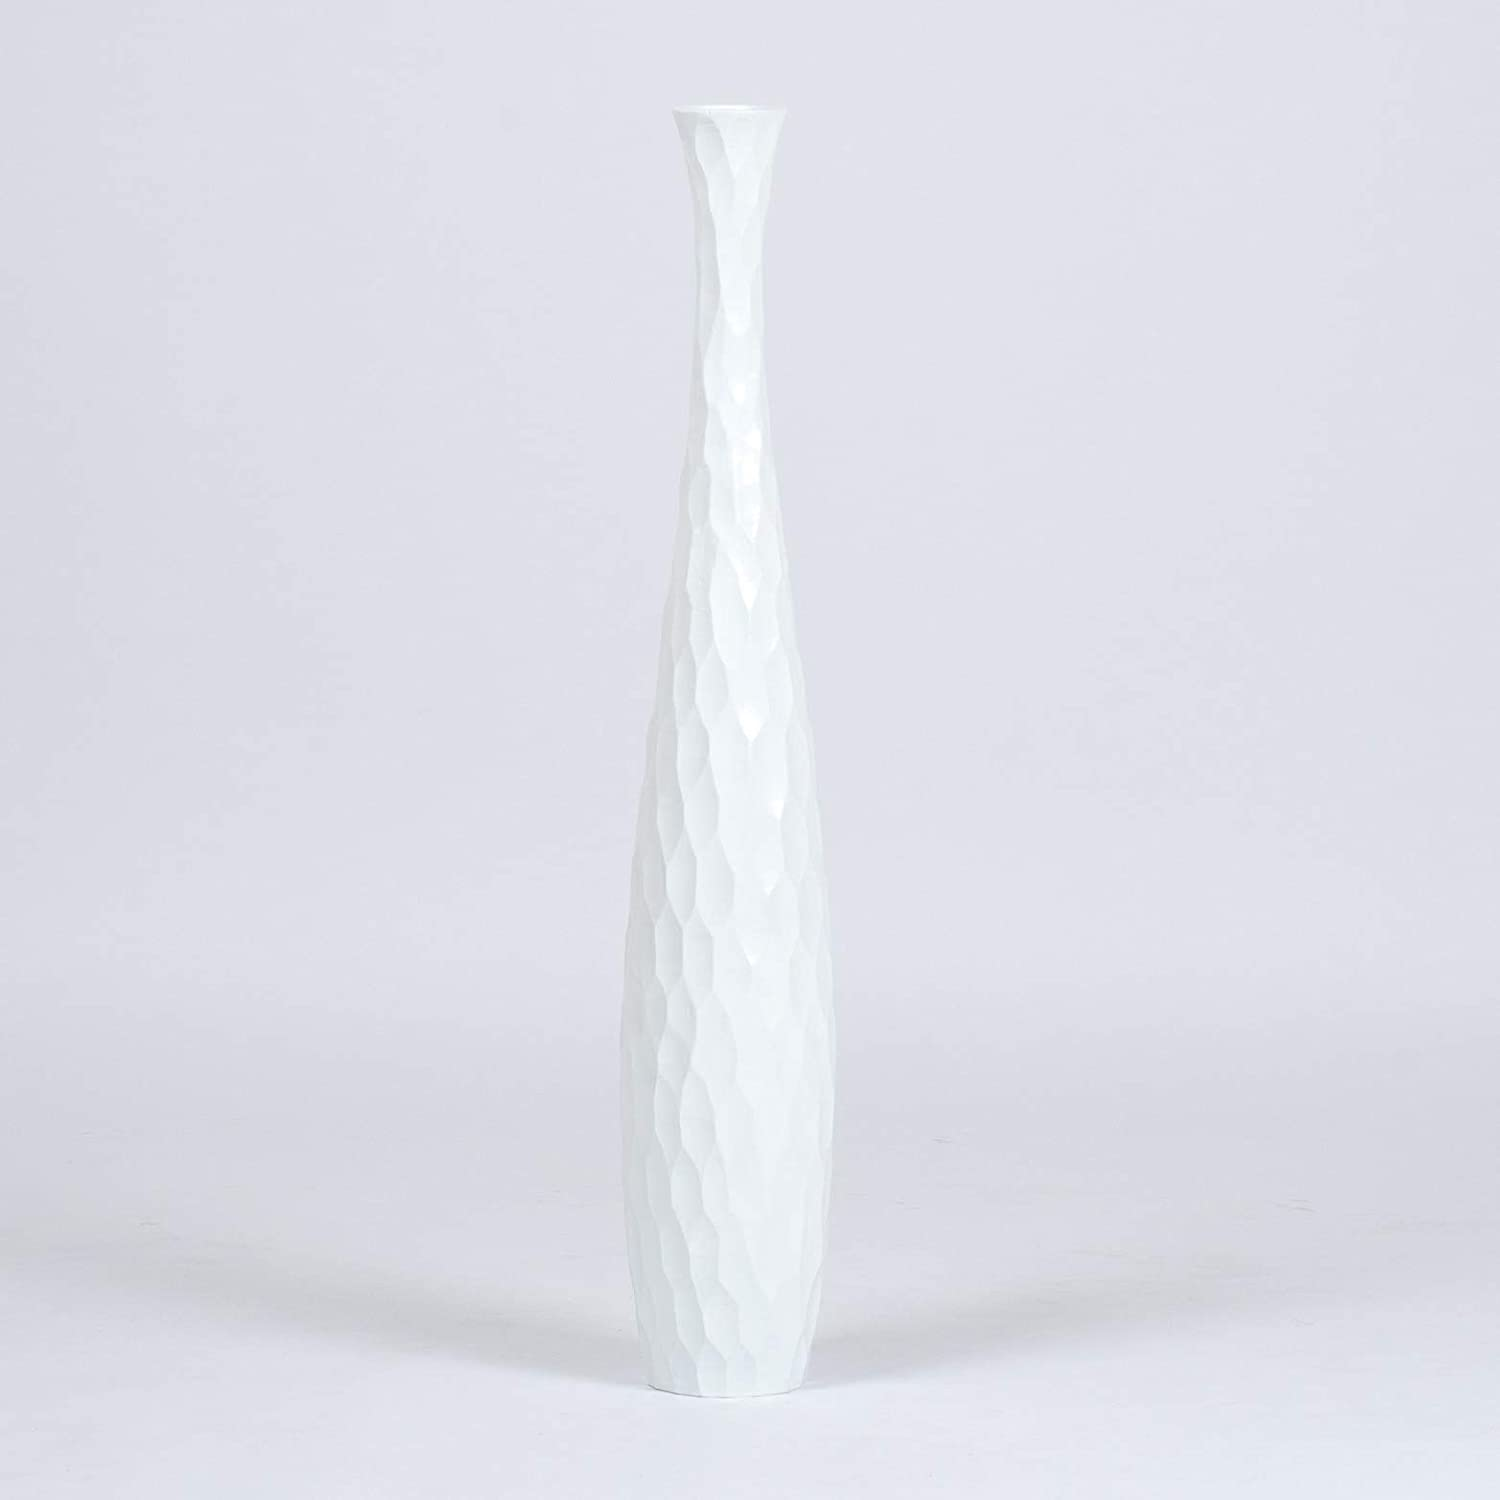 Wood 5x30 inches white Leewadee Tall Big Floor Standing Vase For Home Decor